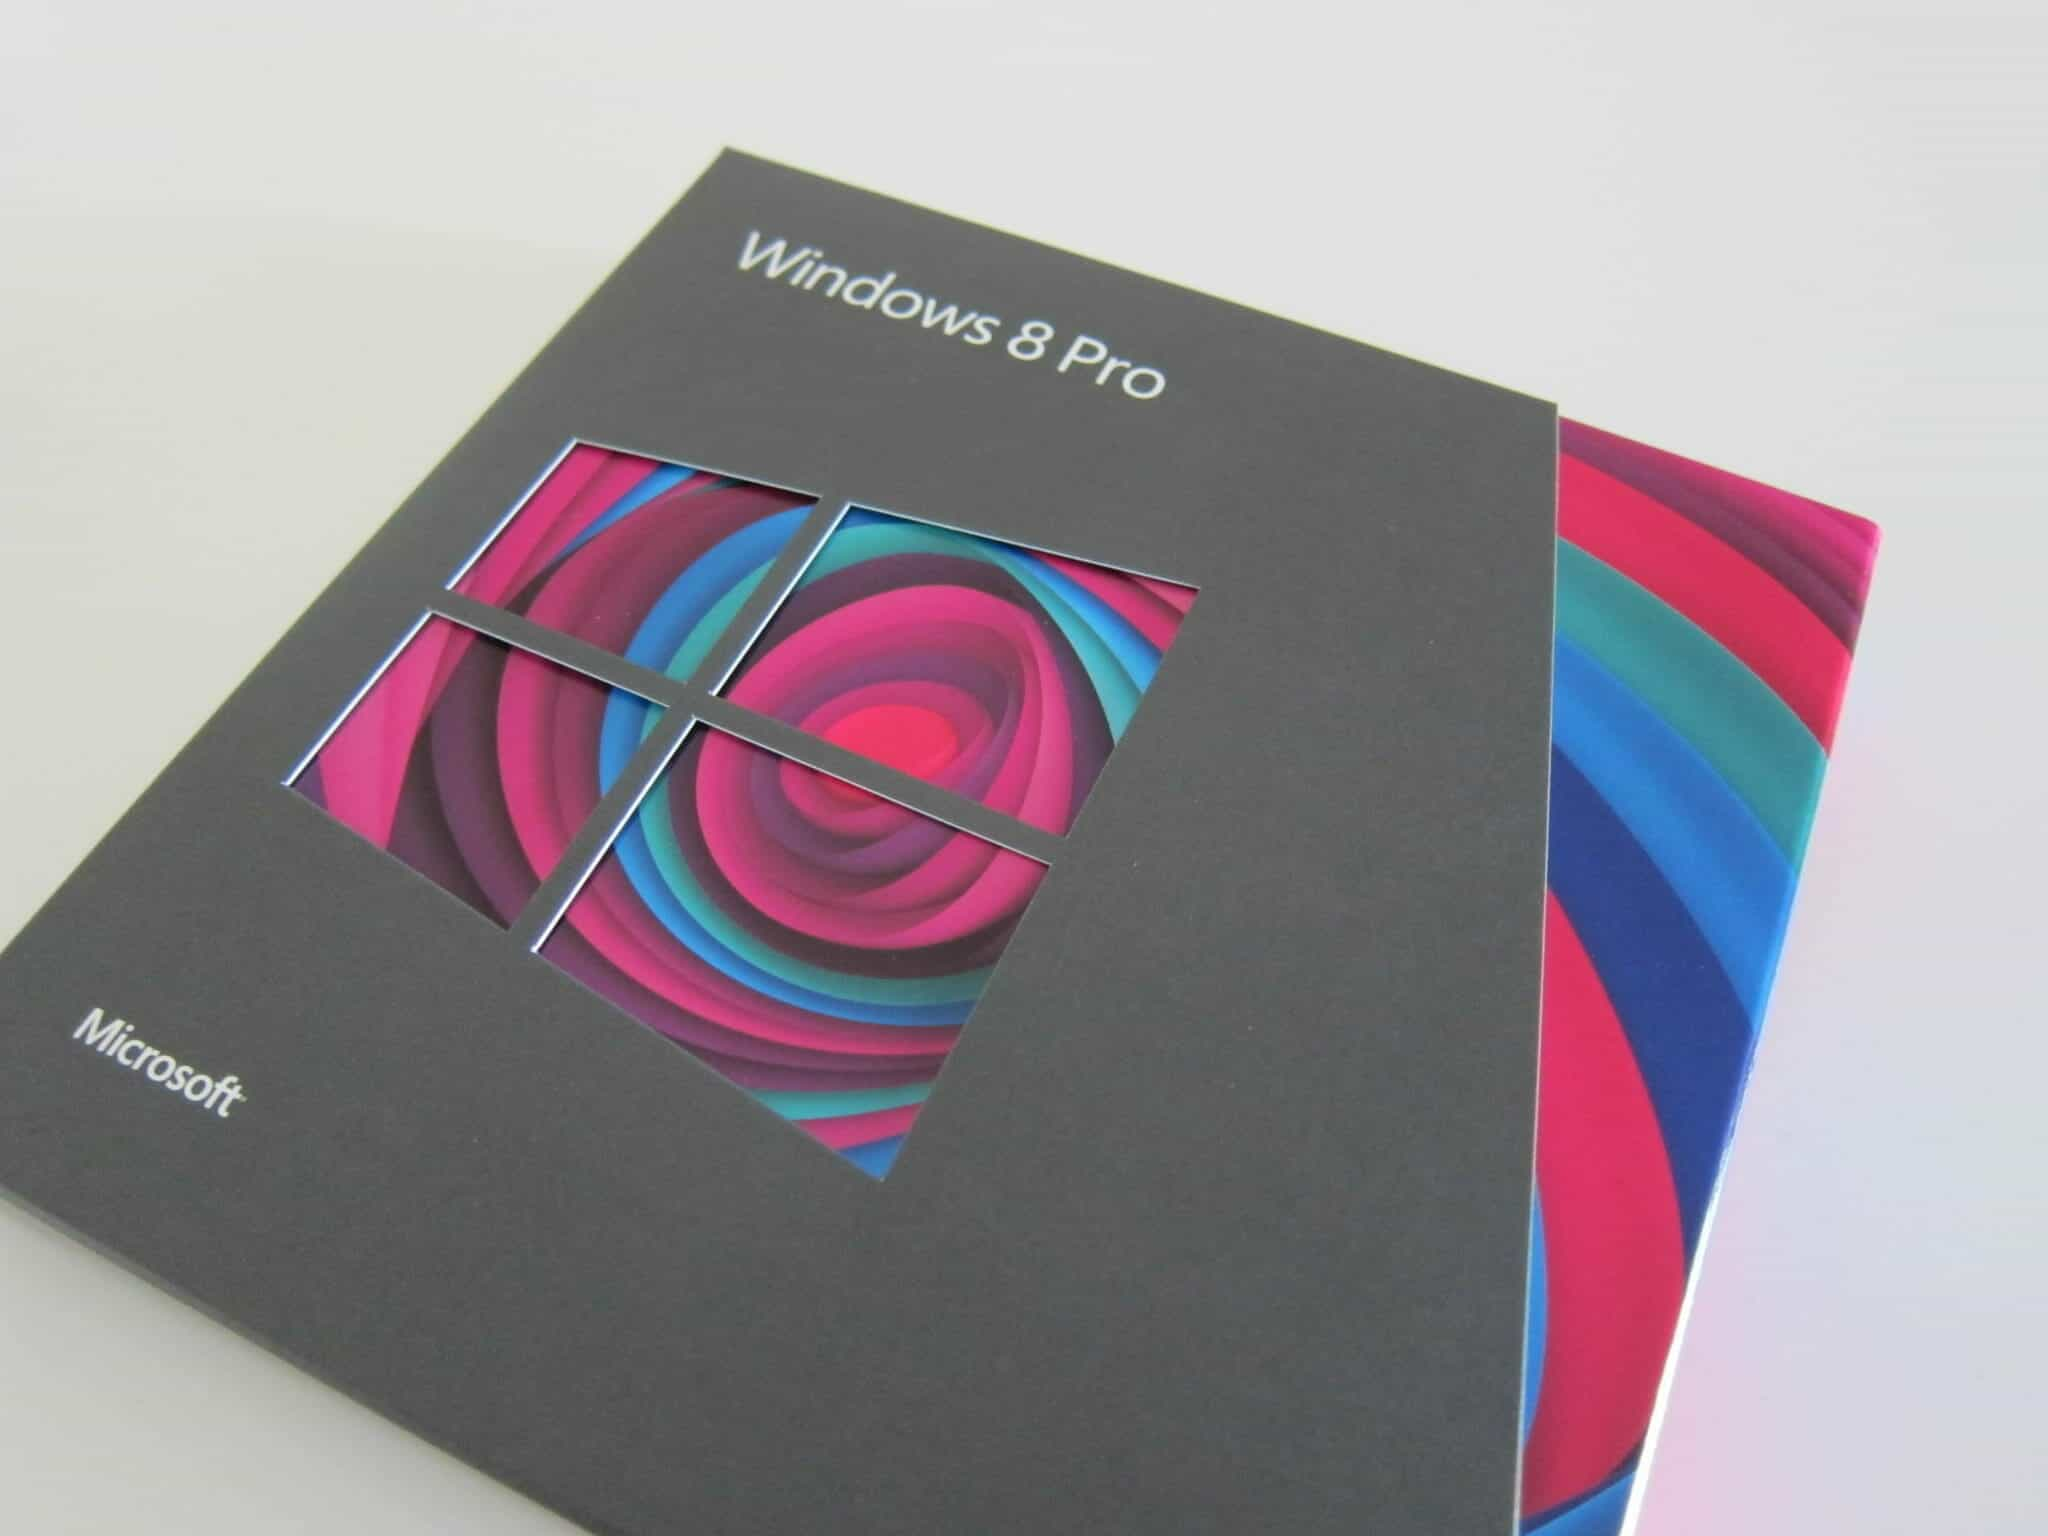 Windows 8 Pro Packaging